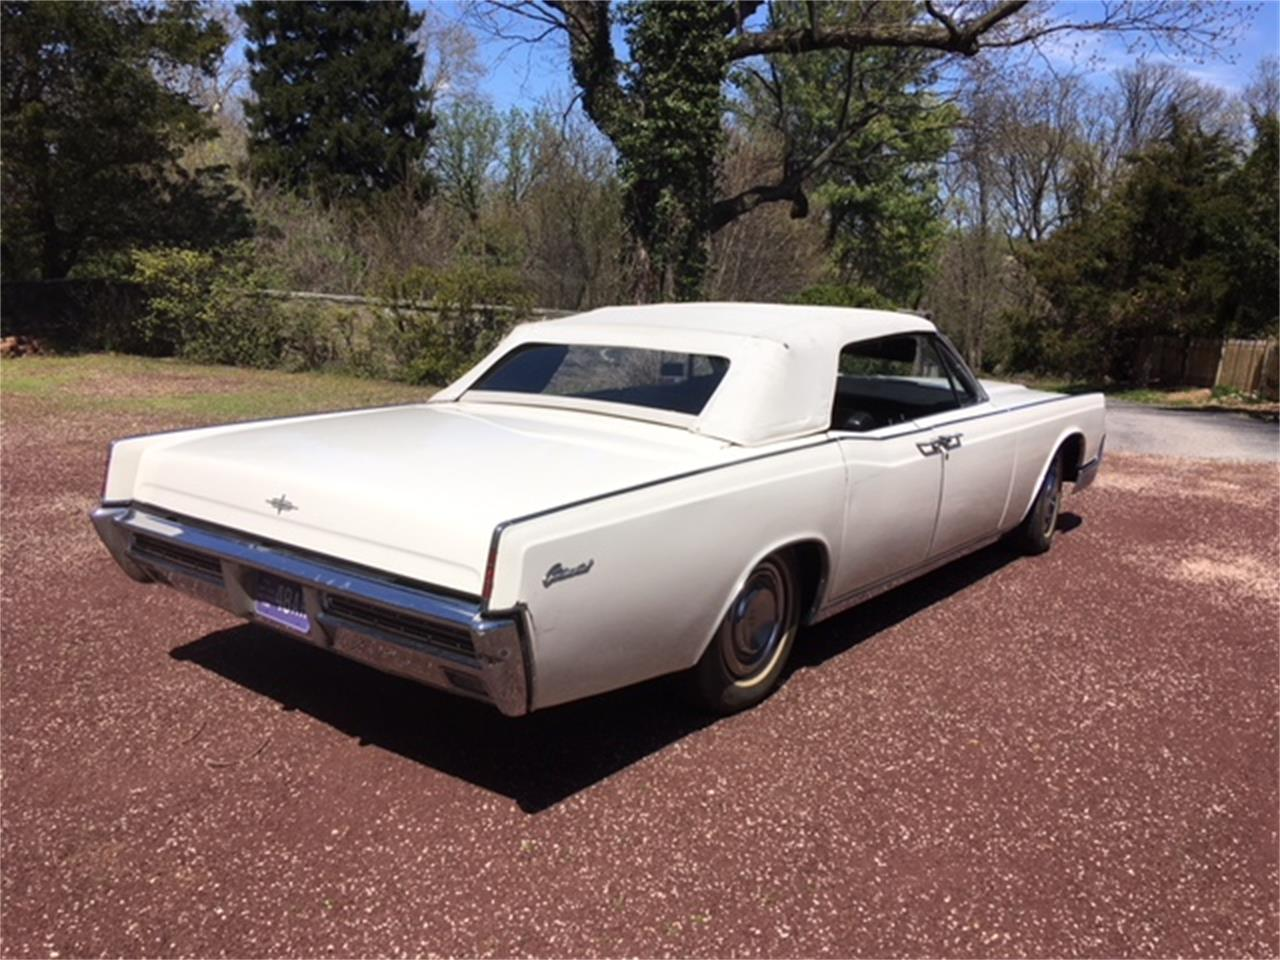 Large Picture of Classic 1967 Lincoln Continental - $29,500.00 Offered by a Private Seller - OTOG